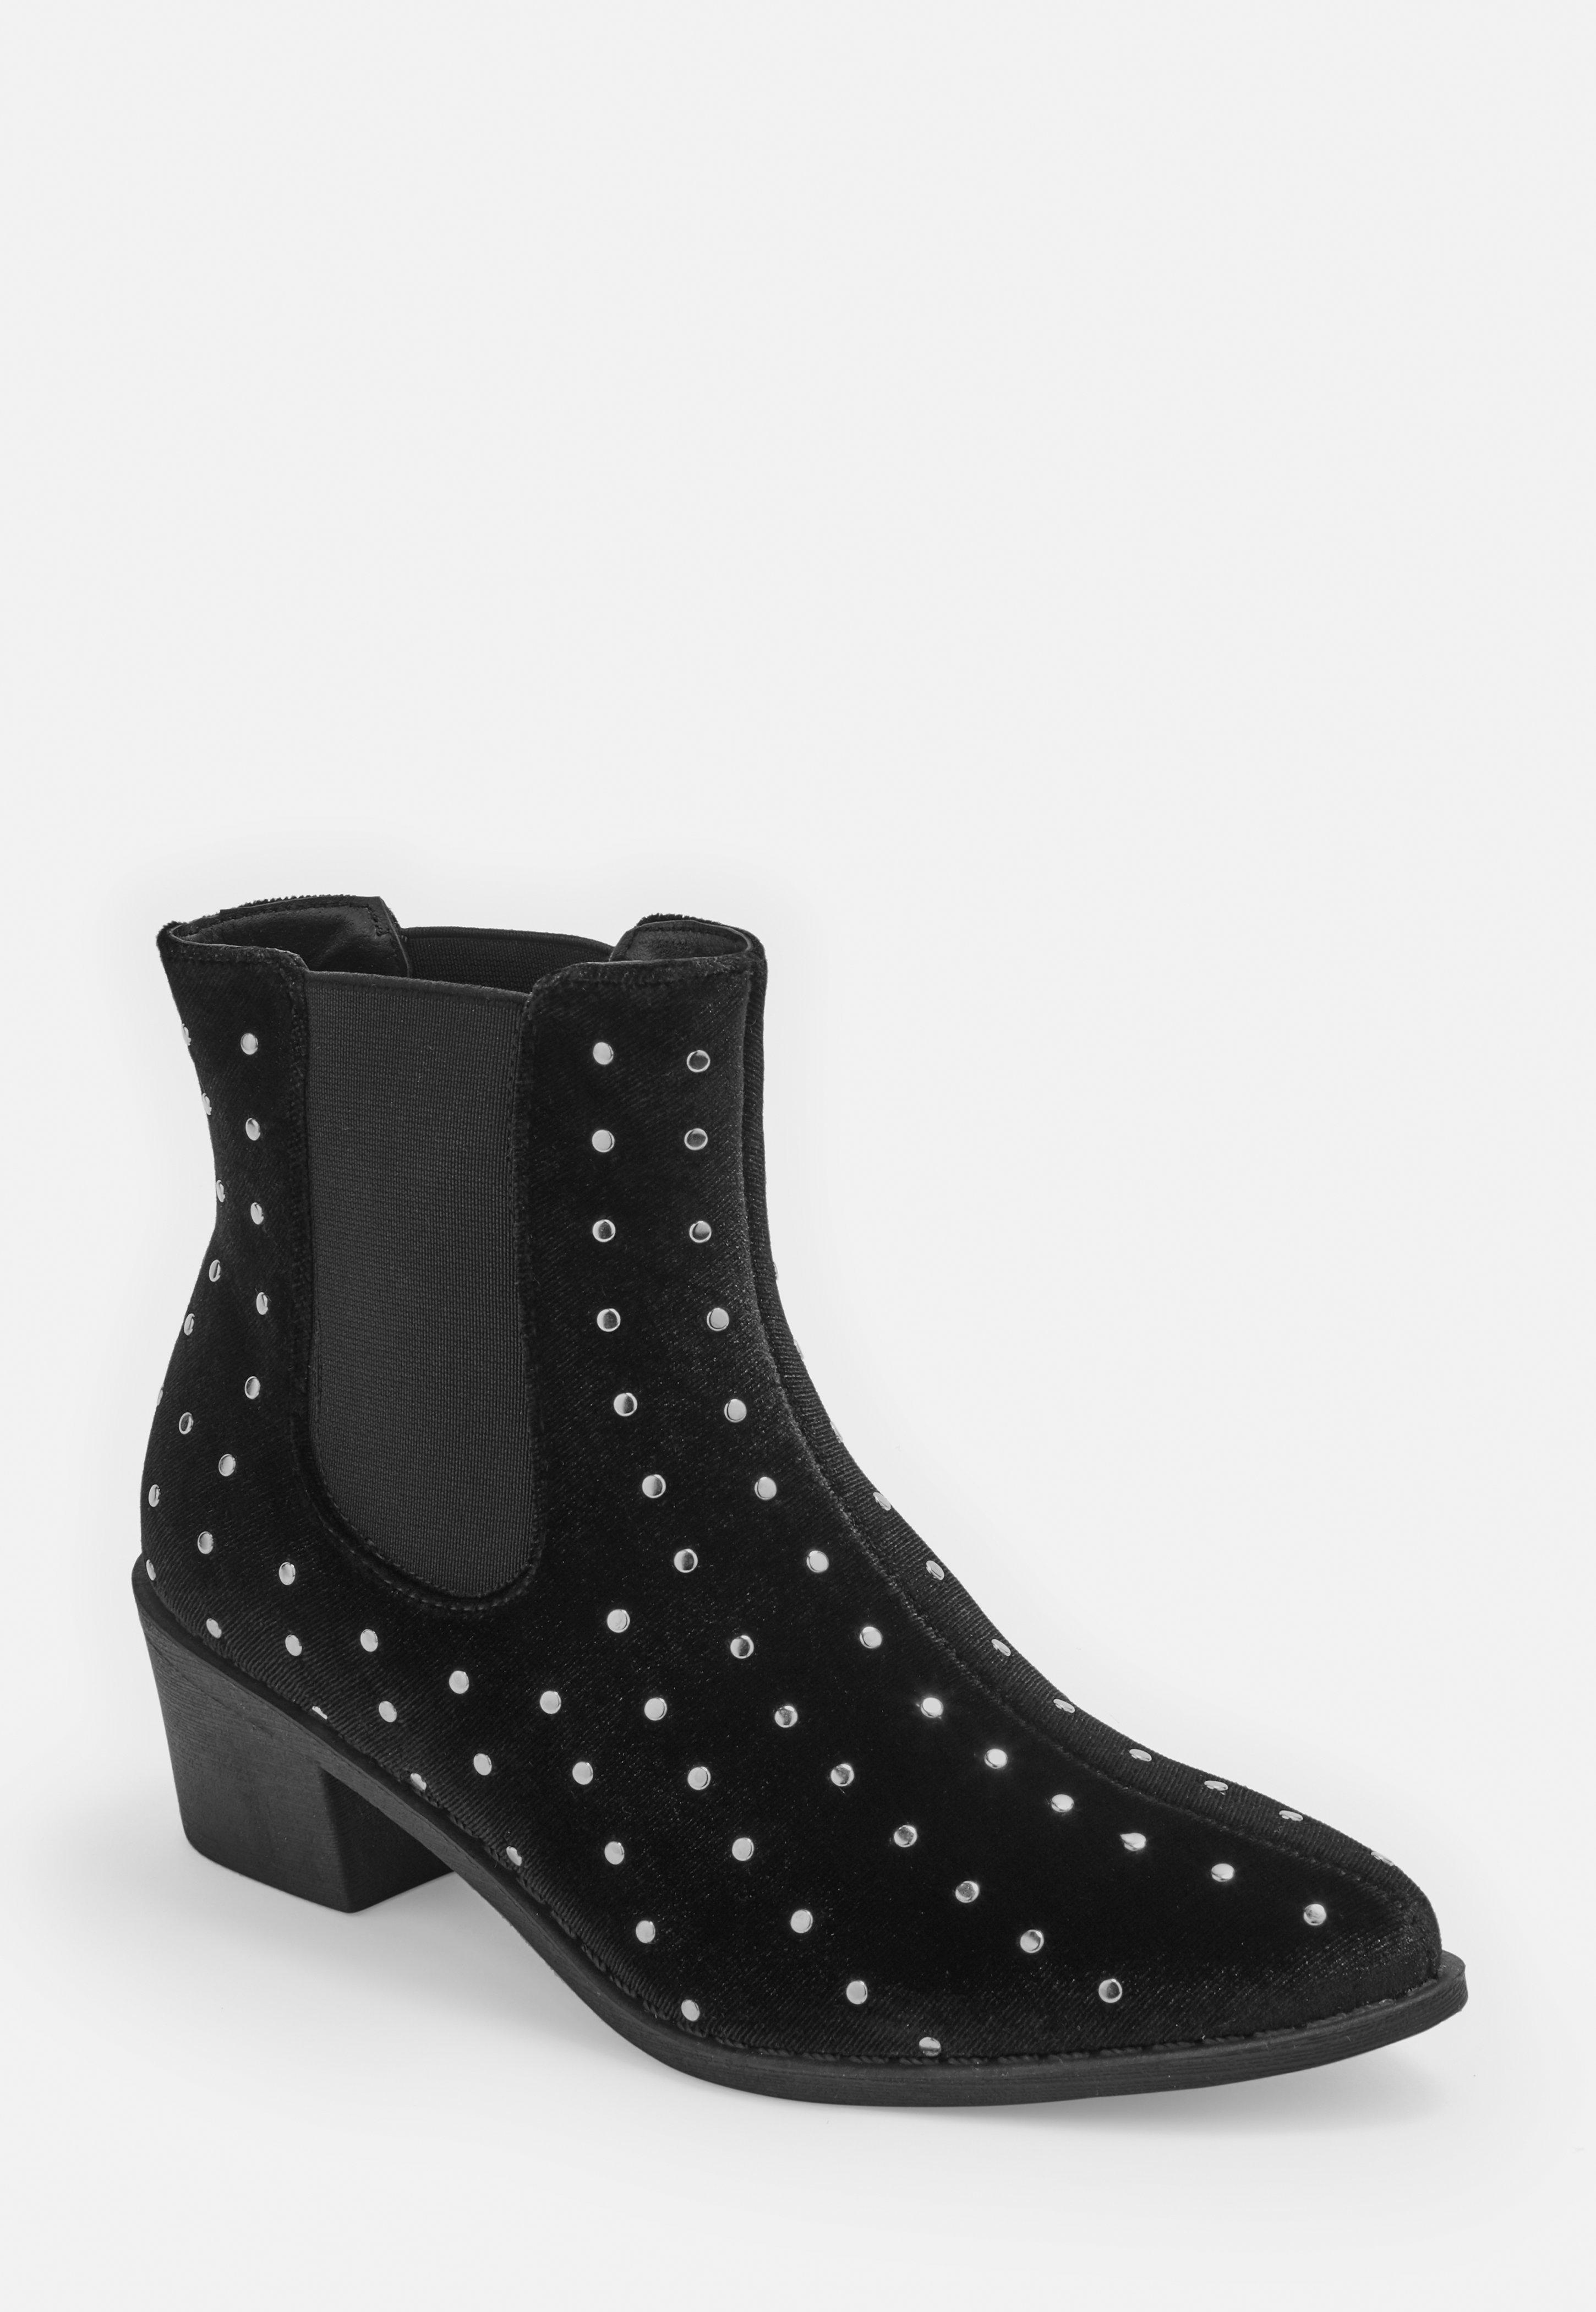 be37bd5828 Women's Boots | Ankle Boots | Black Boots | Missguided